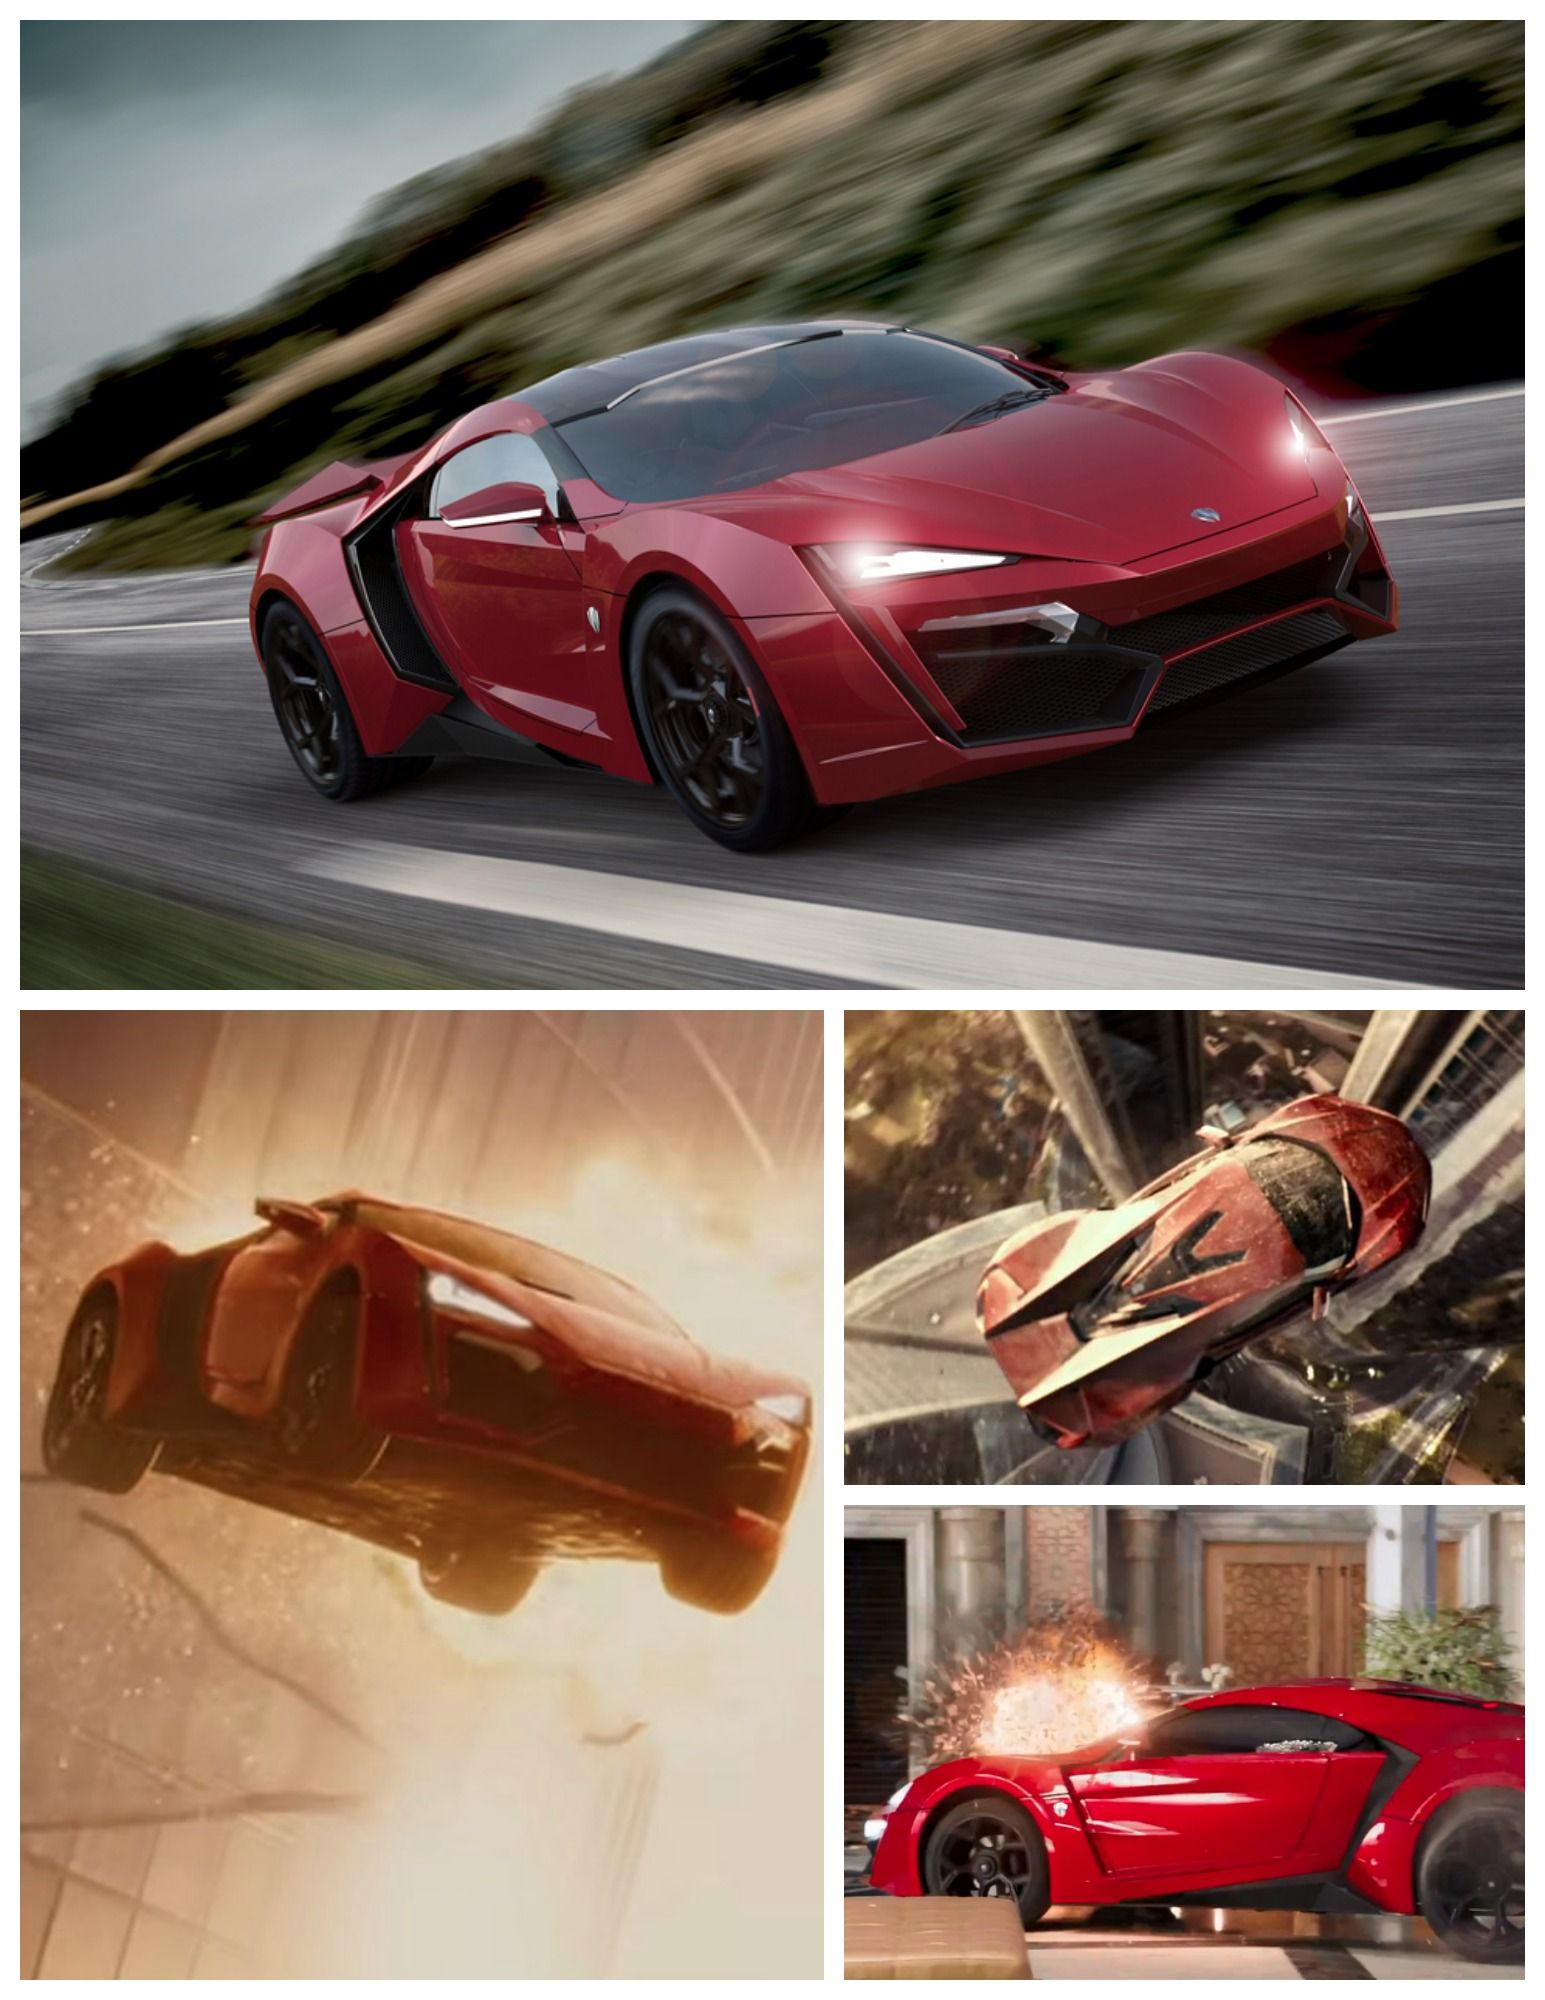 Shop By Category Ebay Fast Cars Lykan Hypersport Furious 7 Cars